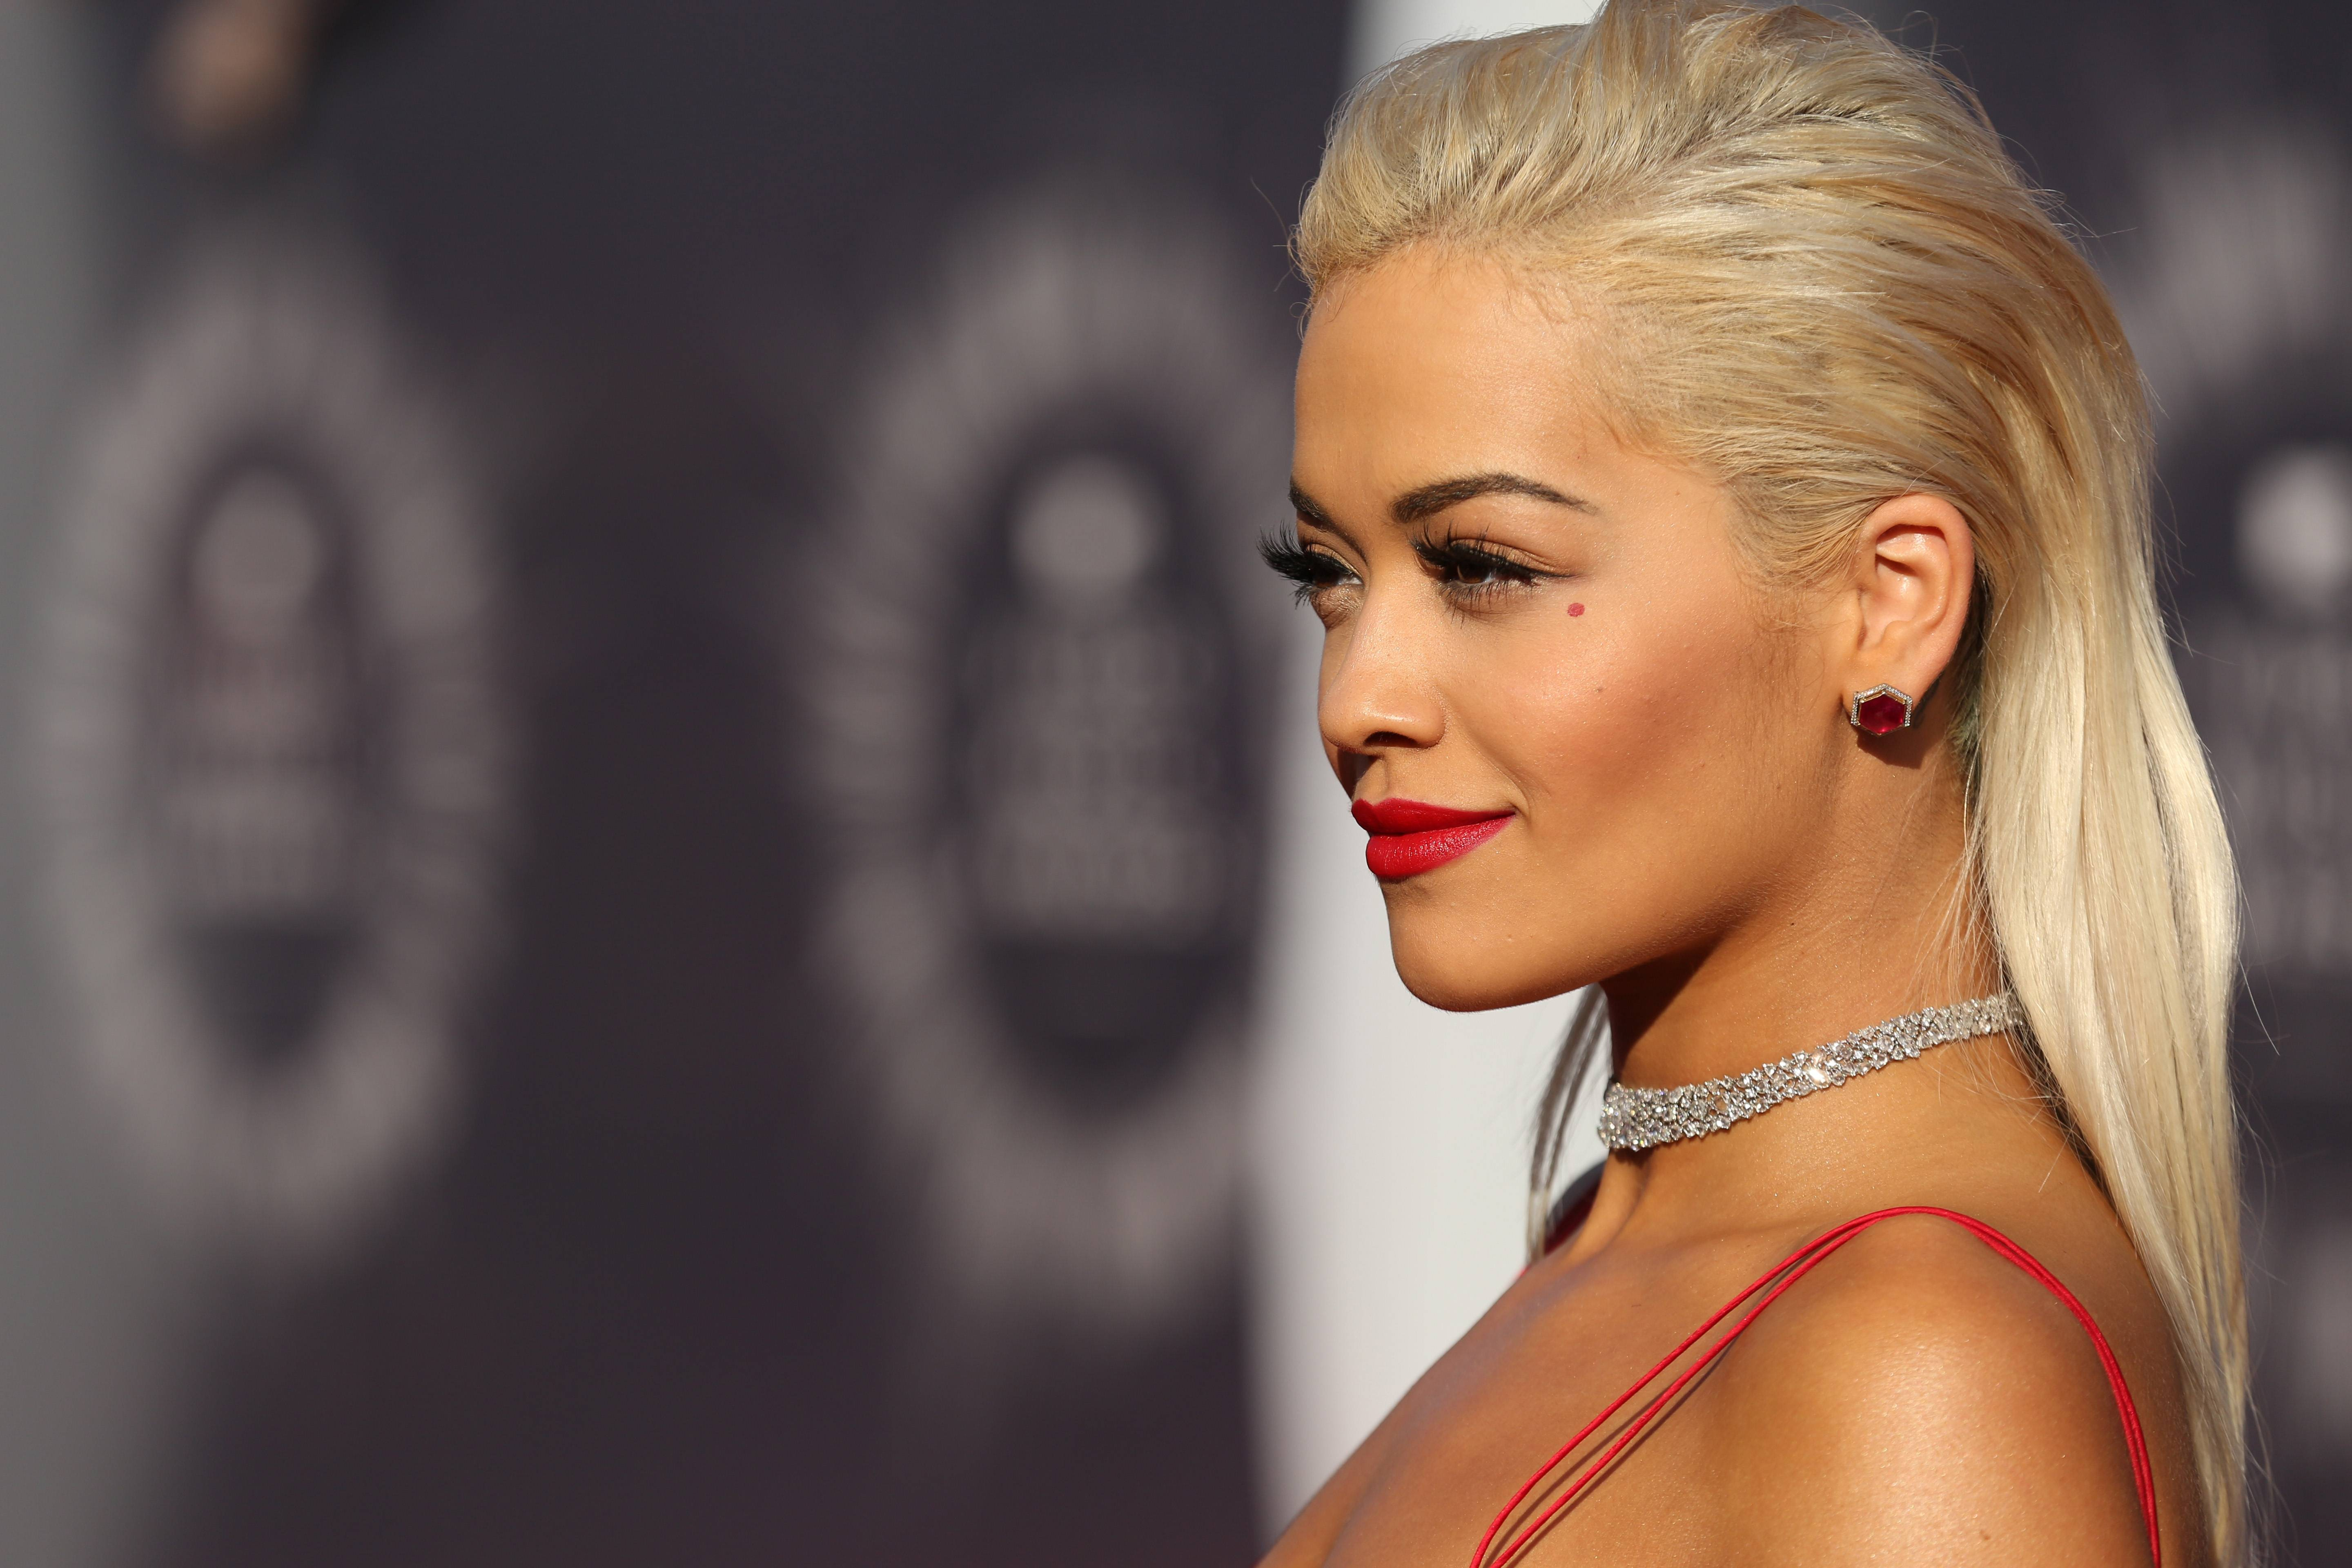 Rita Ora goes for the glamour, but did she pull it off?